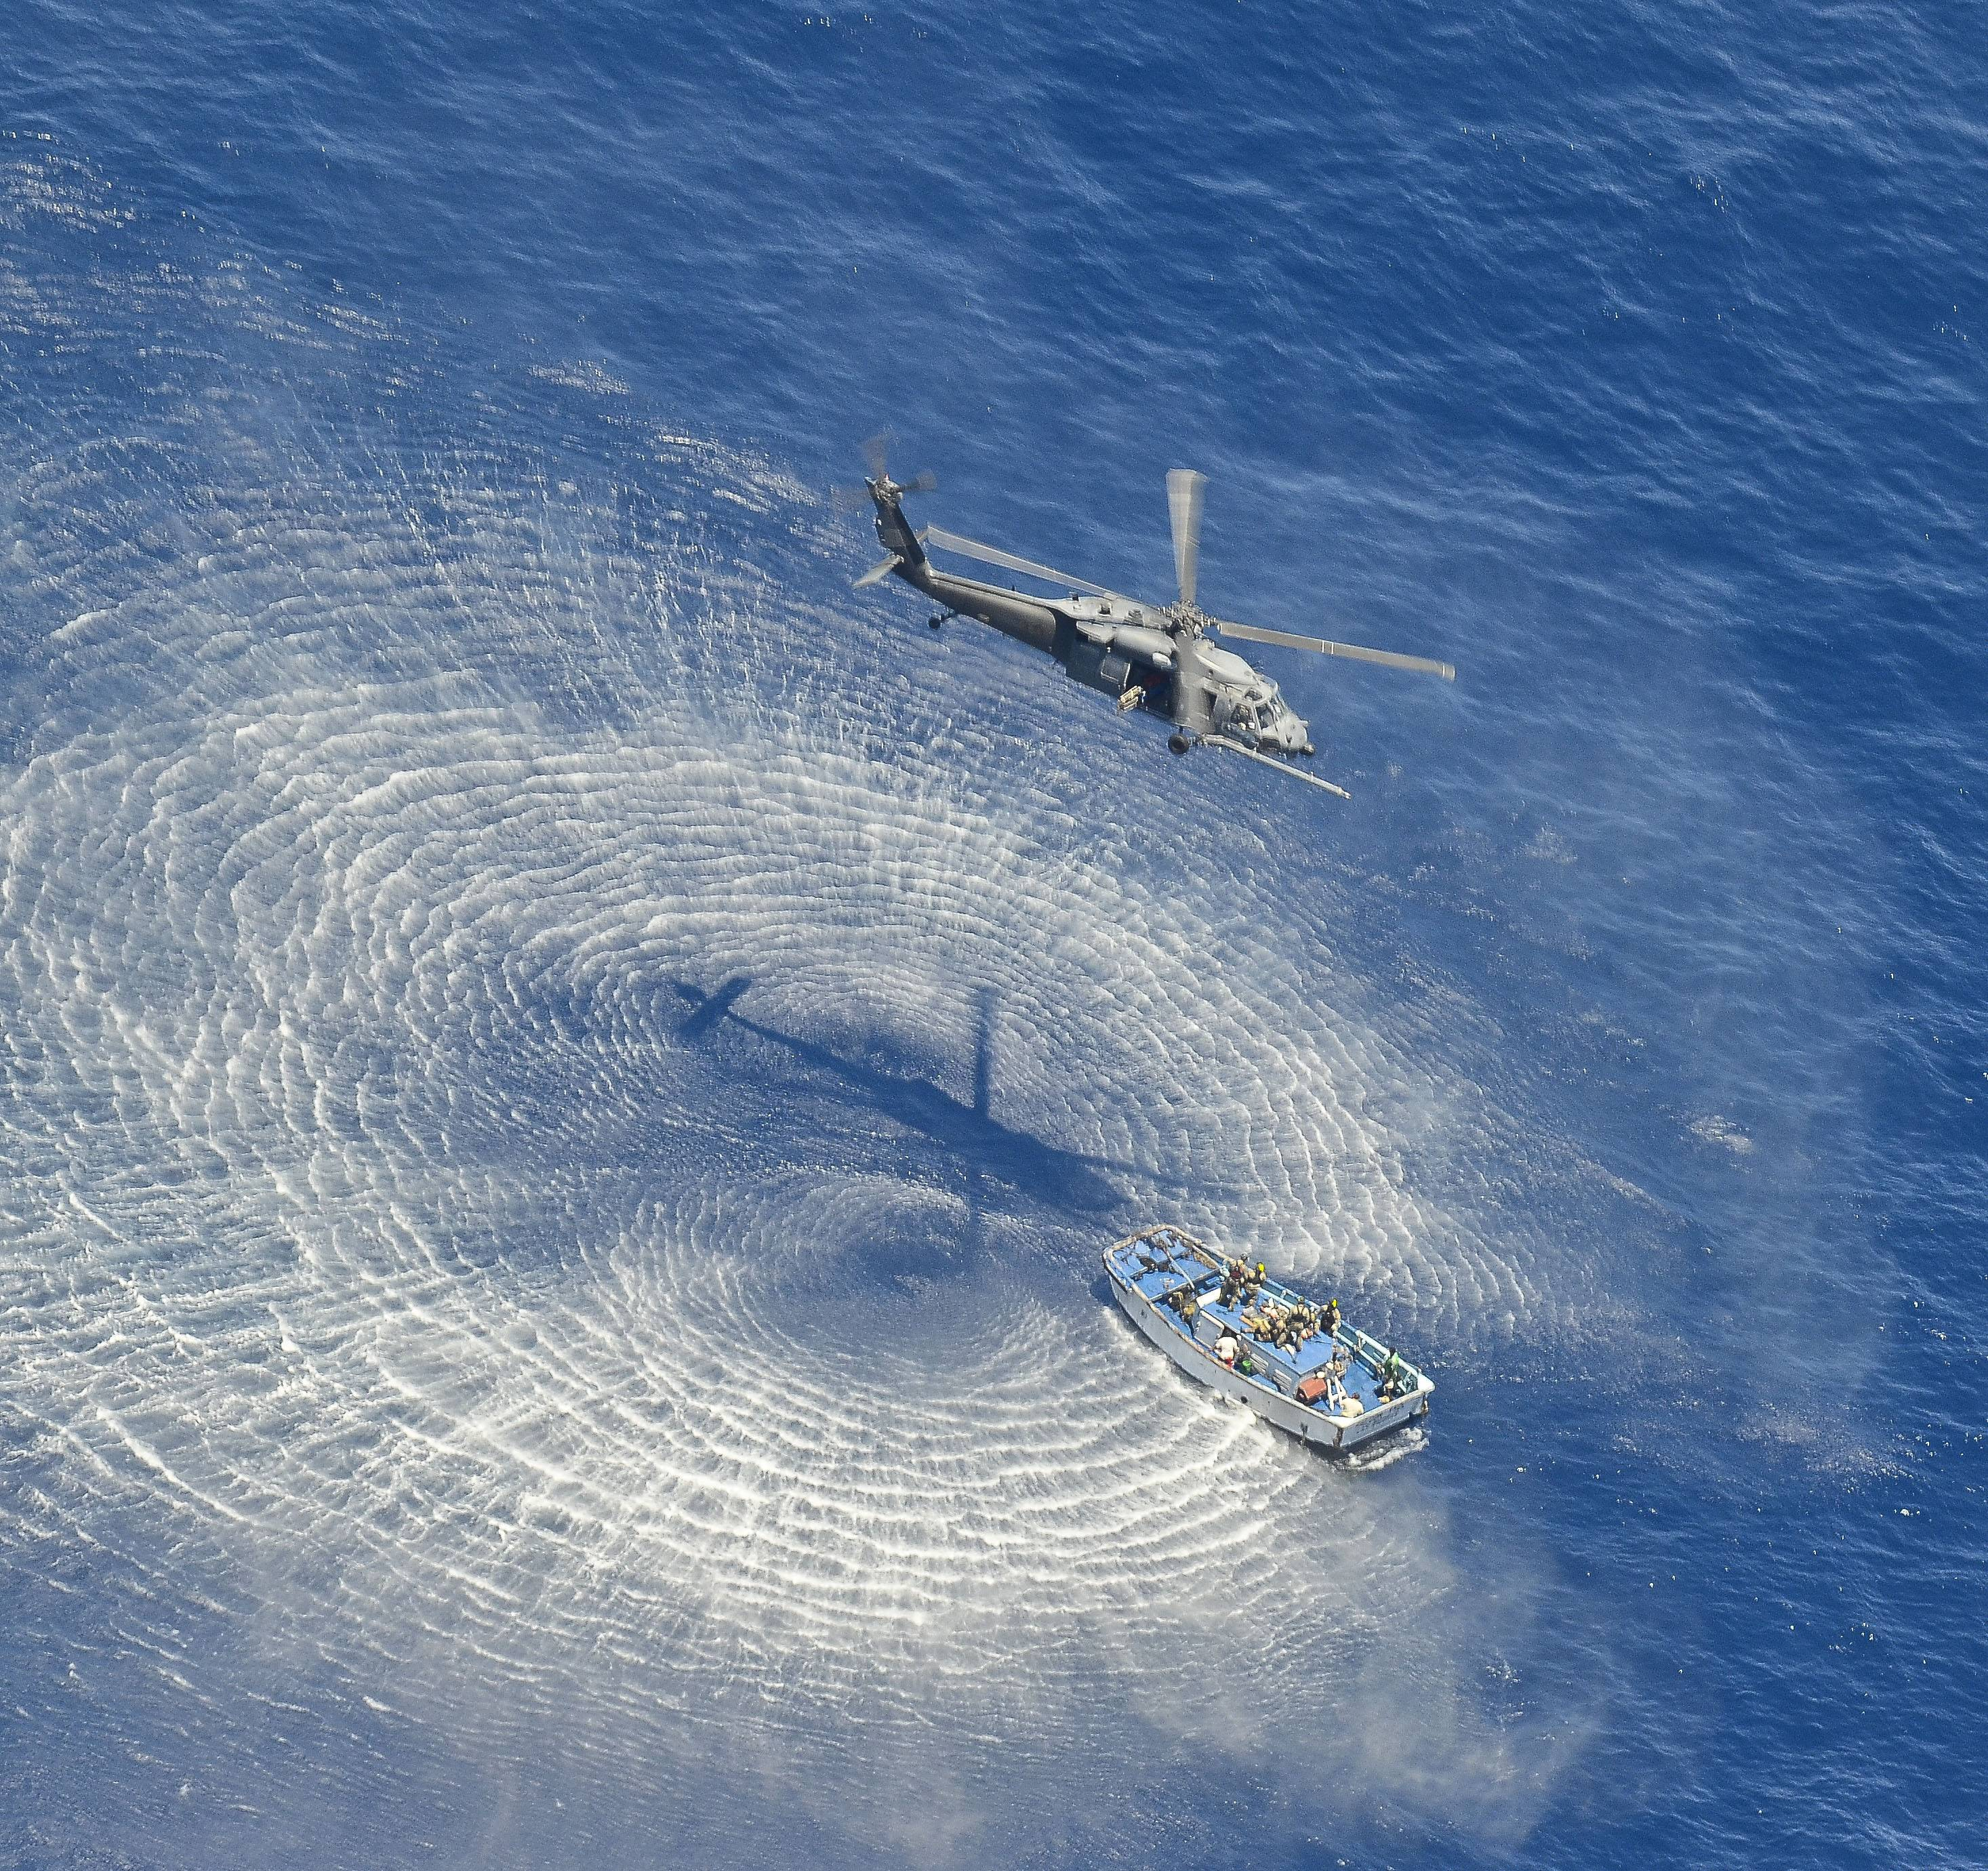 A U.S. Air Force HH-60G Pavehawk helicopter from the 55th Rescue Squadron hovers 600 nautical miles off the Pacific Coast of Mexico to hoist two badly burned Chinese fishermen. The two were among 17 Chinese crew members believed aboard a fishing vessel that caught fire and sank in the Pacific Ocean.